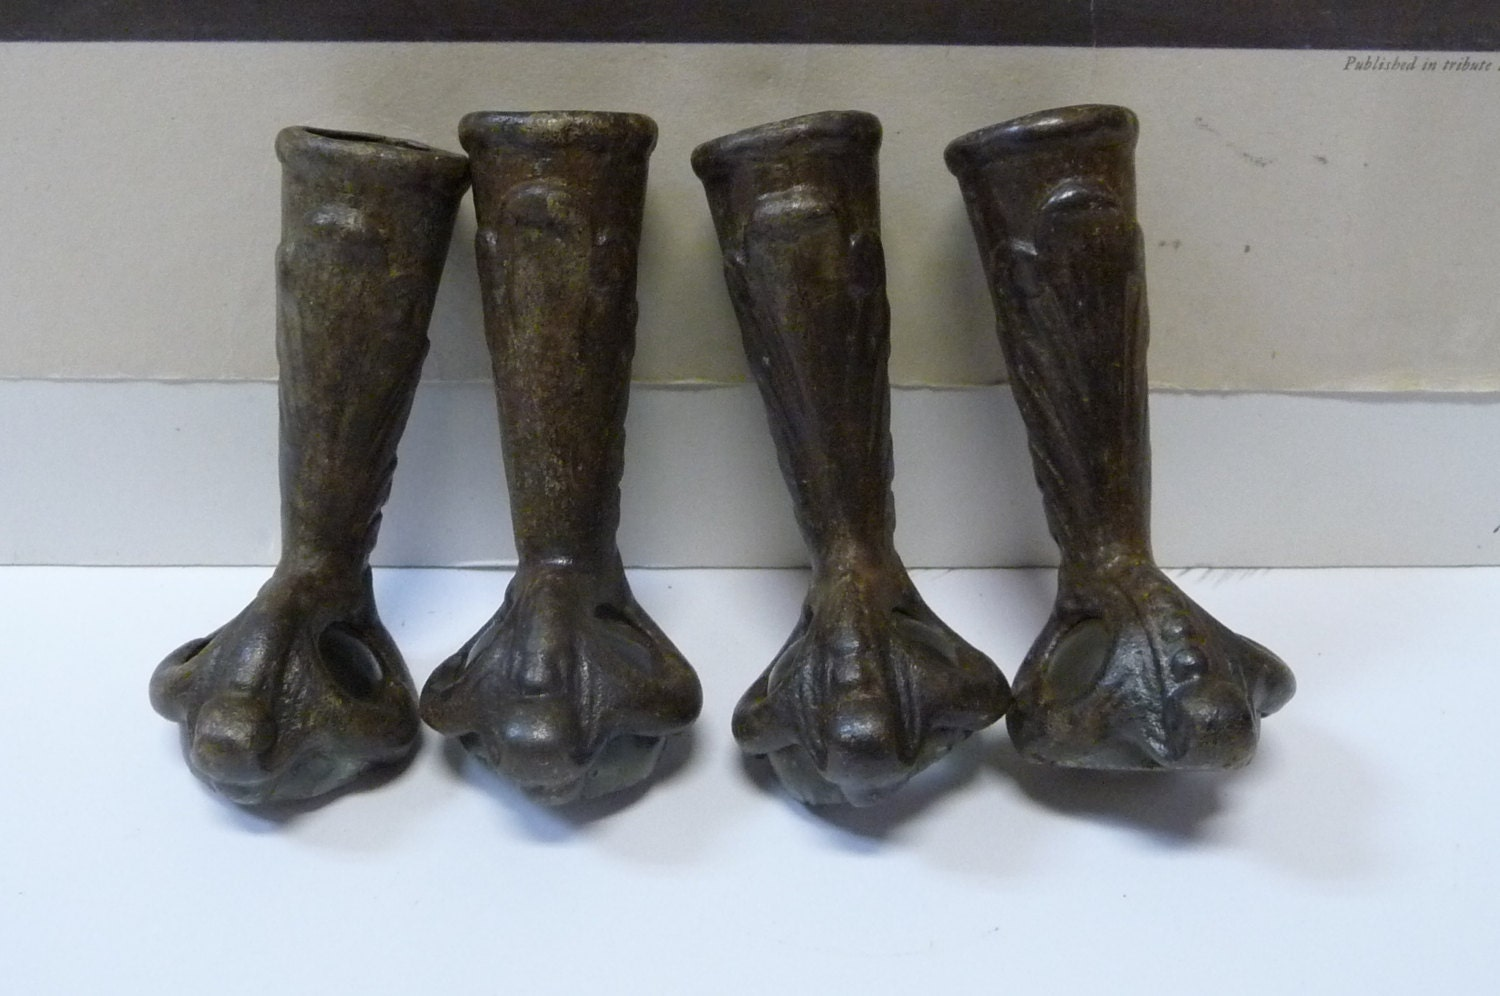 Four Antique Claw Foot Feet Stool Table Legs Cast Iron Crystal